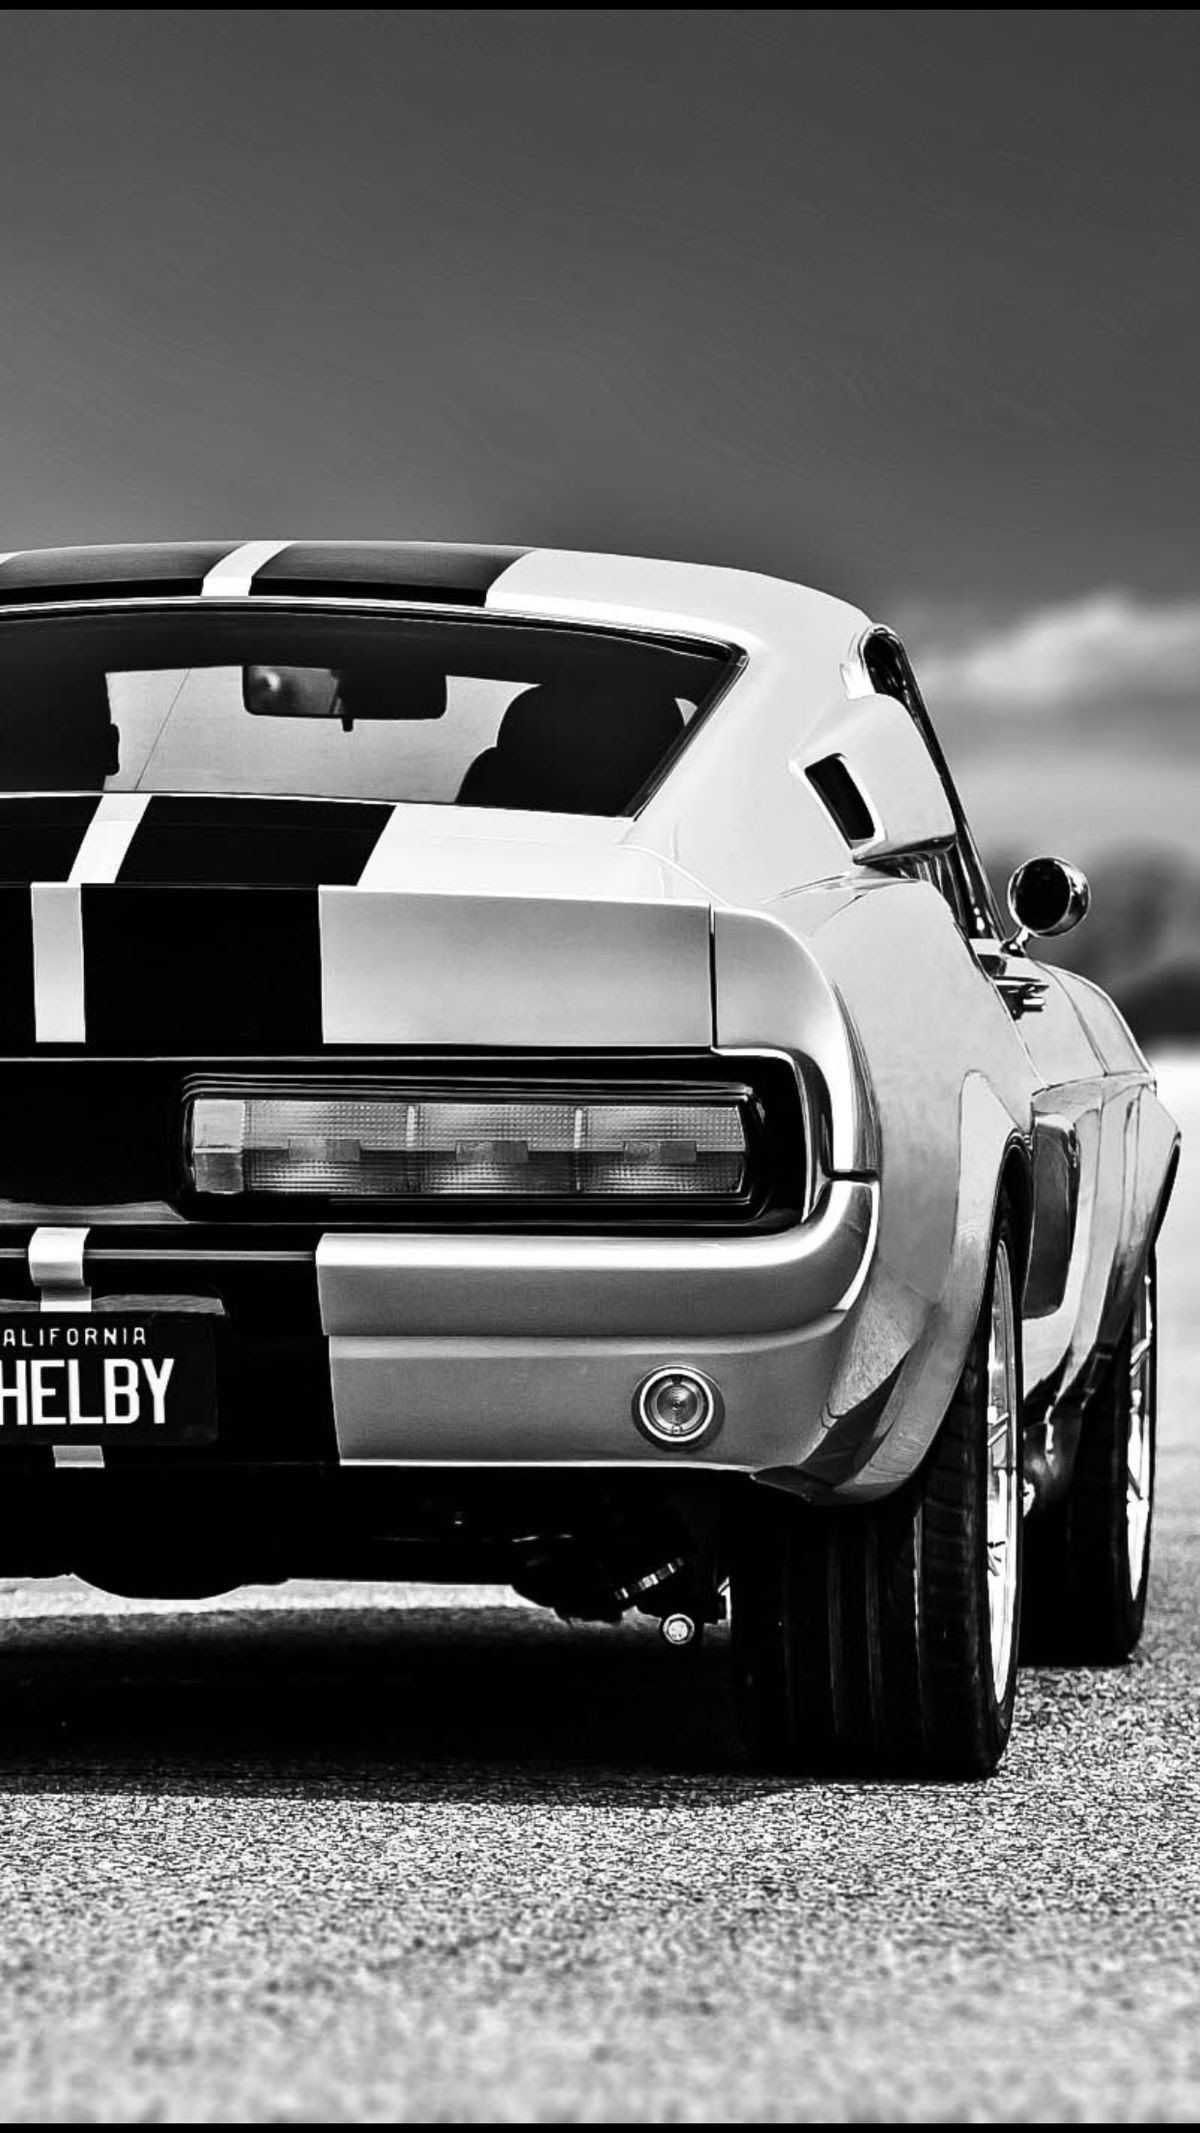 Shelby The Vintage Beauty Cars Classic Classiccars Vintage